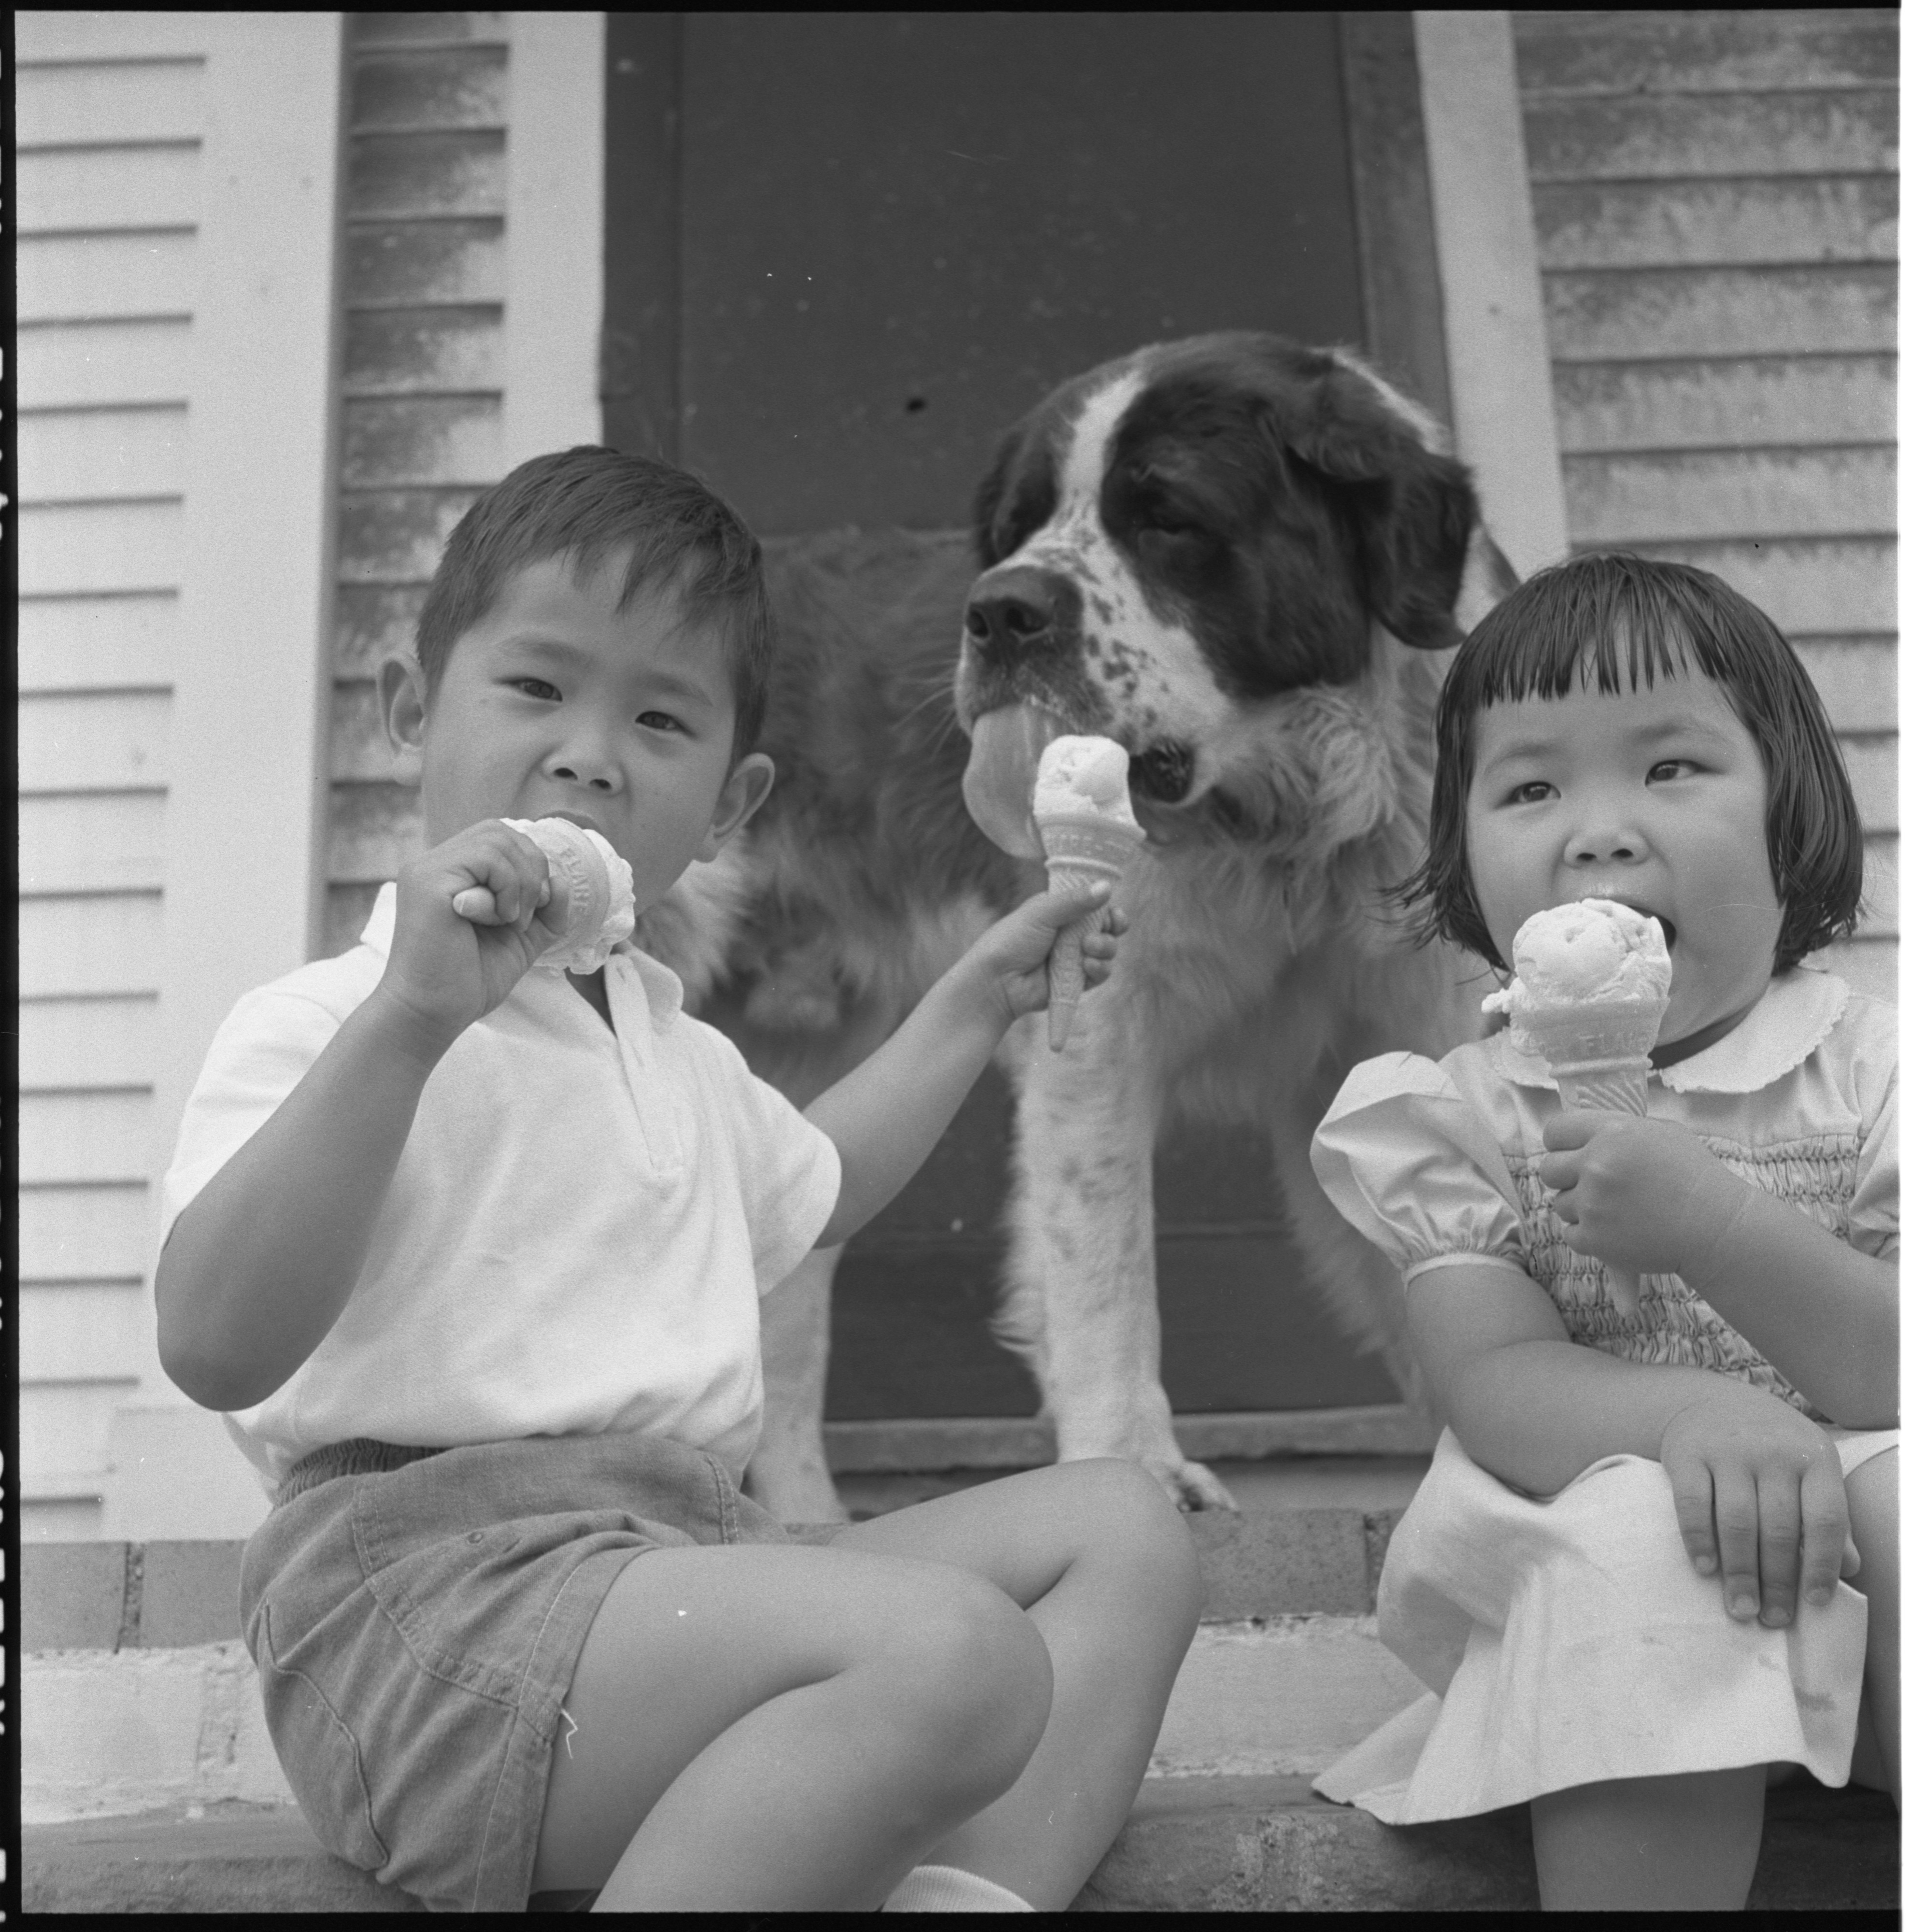 Ice Cream For Everyone, June 1957 image